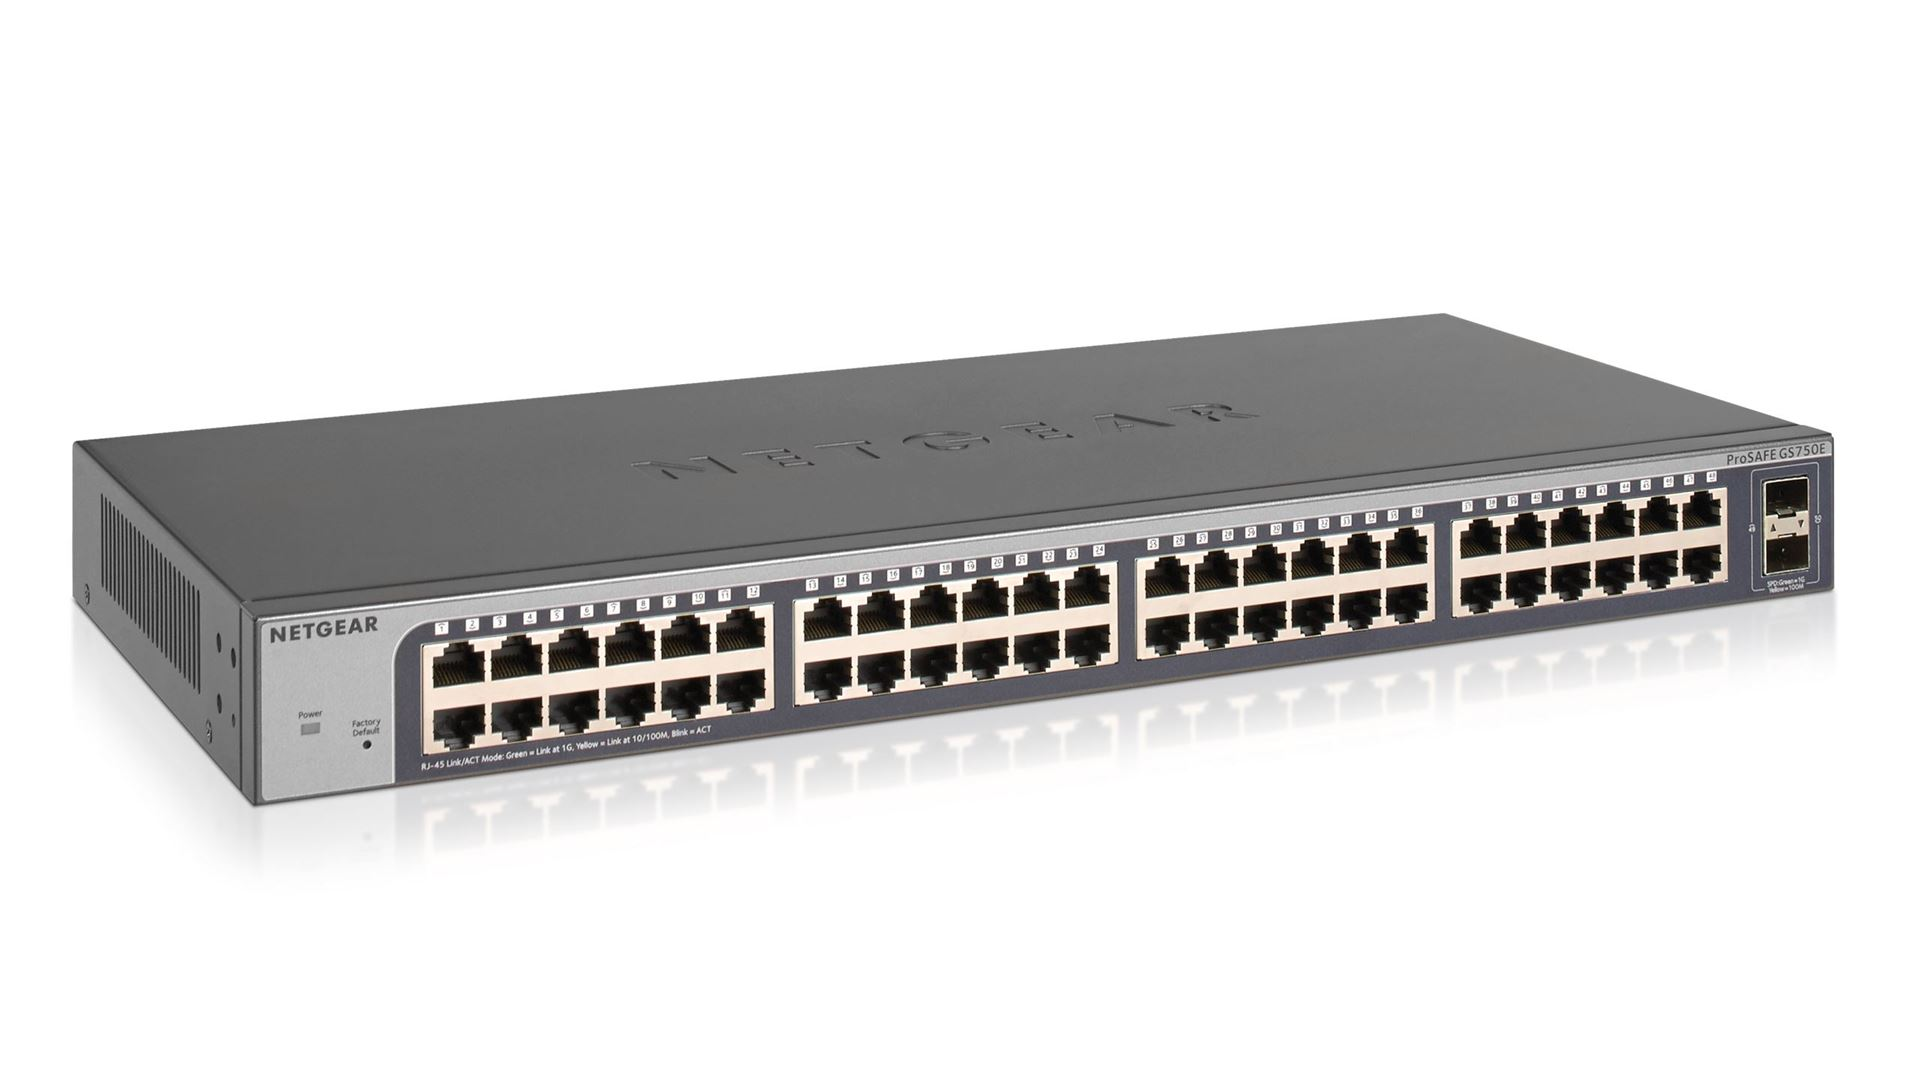 48-port Gigabit Ethernet Smart Managed Plus Switch with 2 SFP Ports (GS750E)